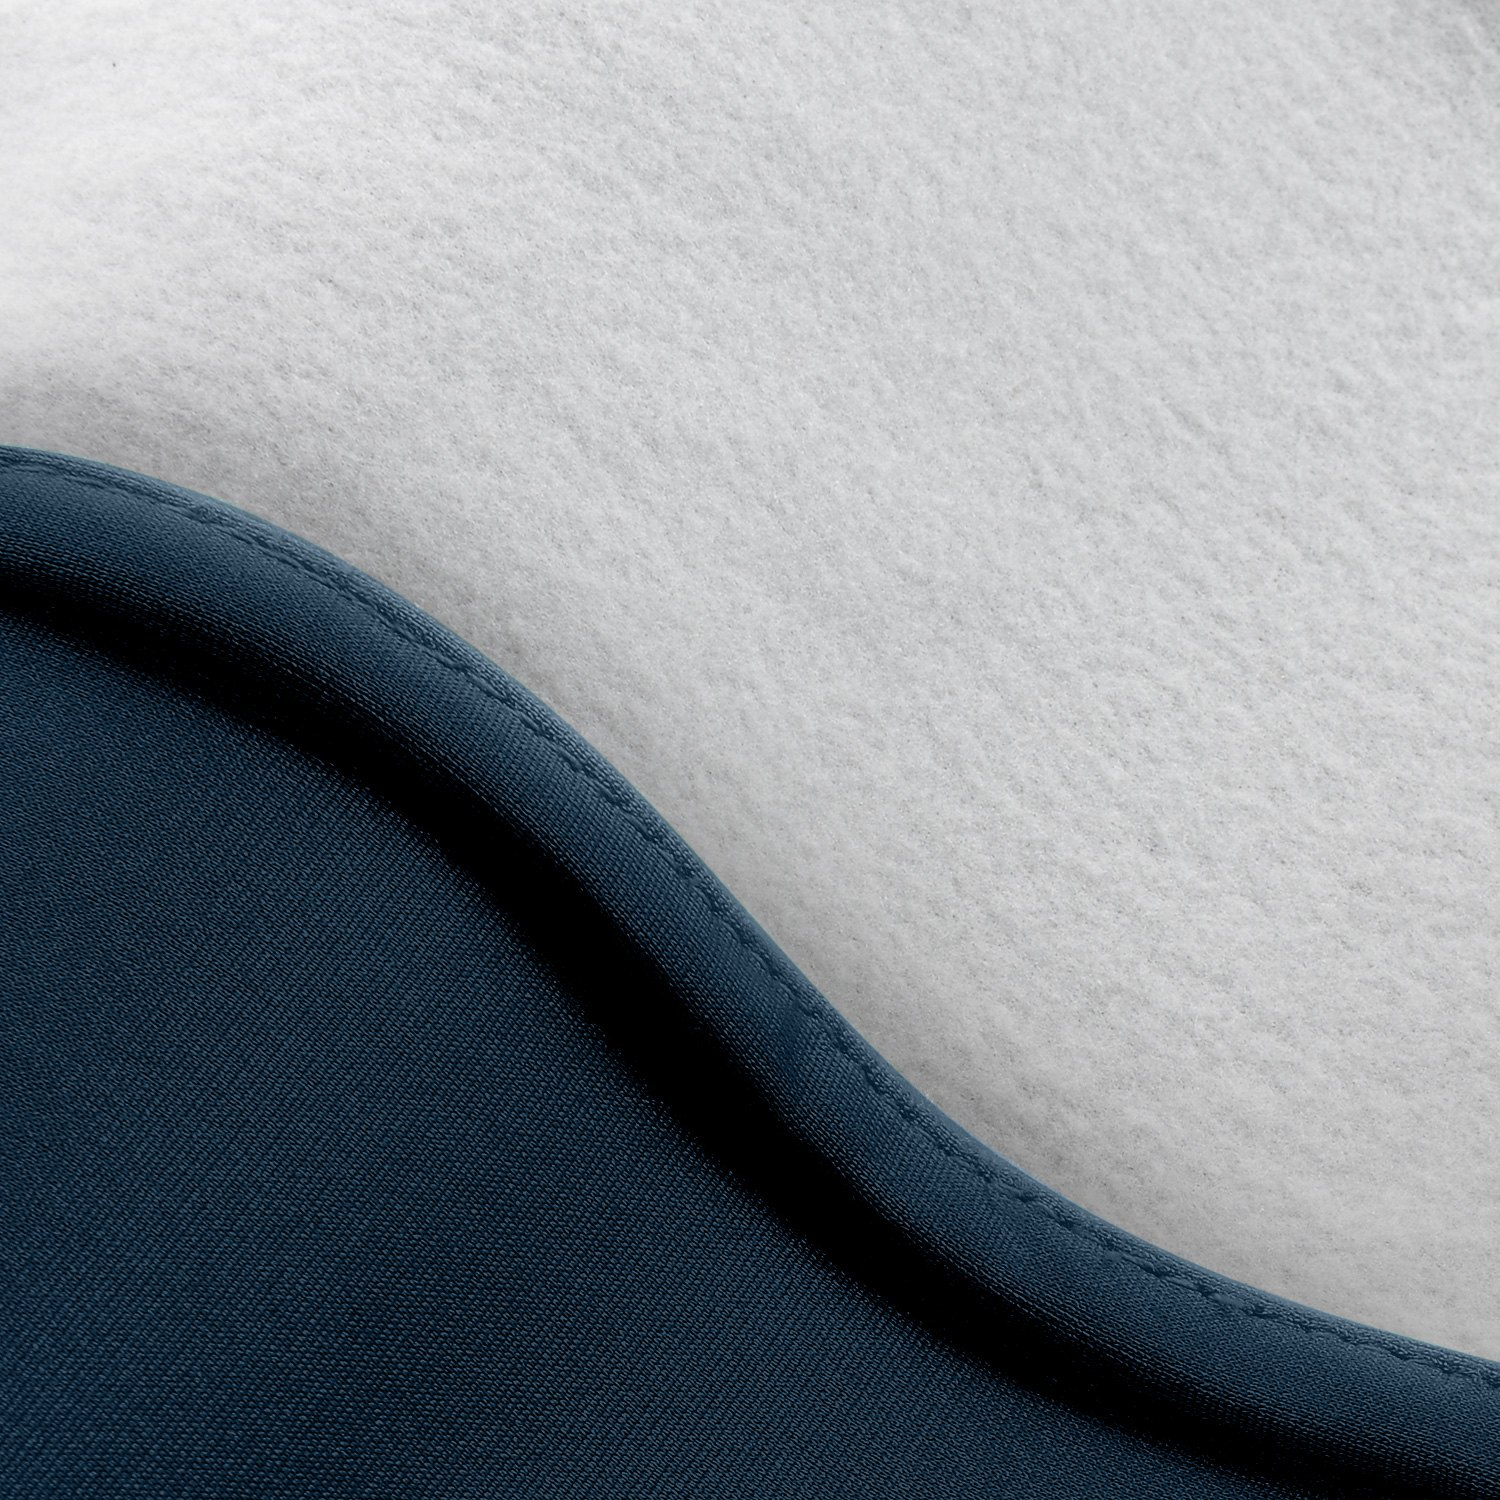 satin stretch navy blue car cover inner layer